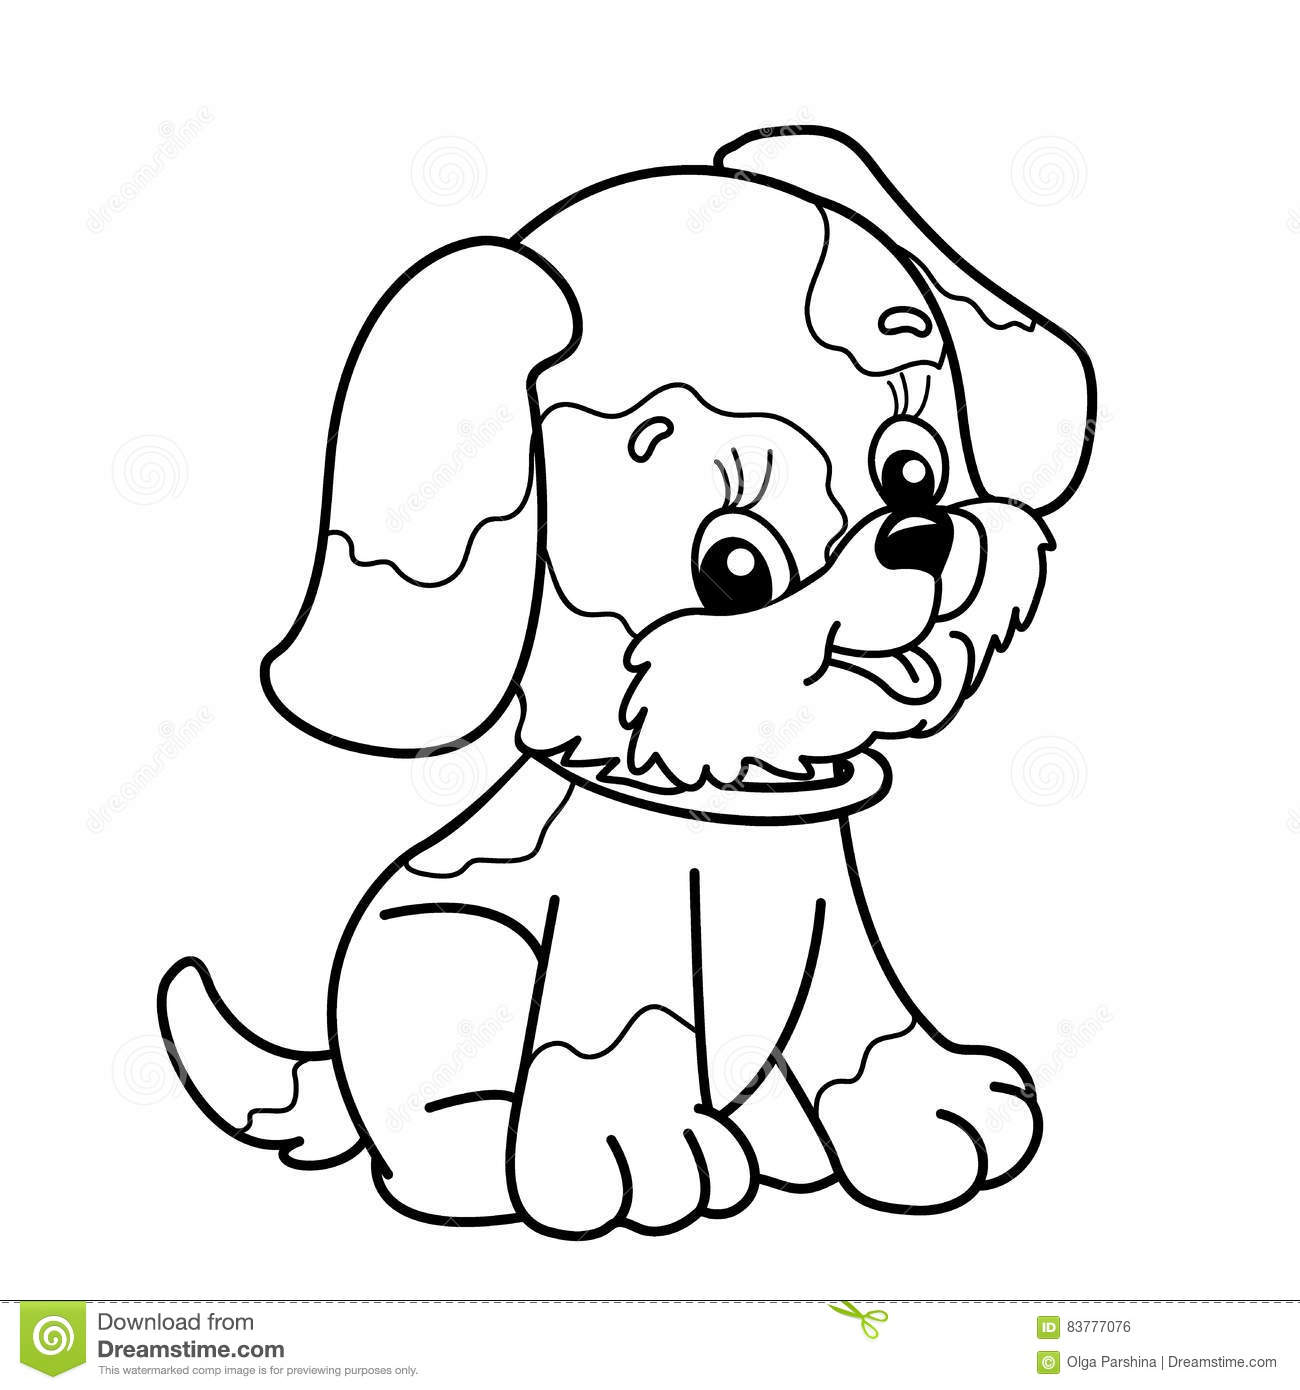 Coloring Page Outline Of Cartoon Dog. Cute Puppy Sitting. Pet. Stock ...